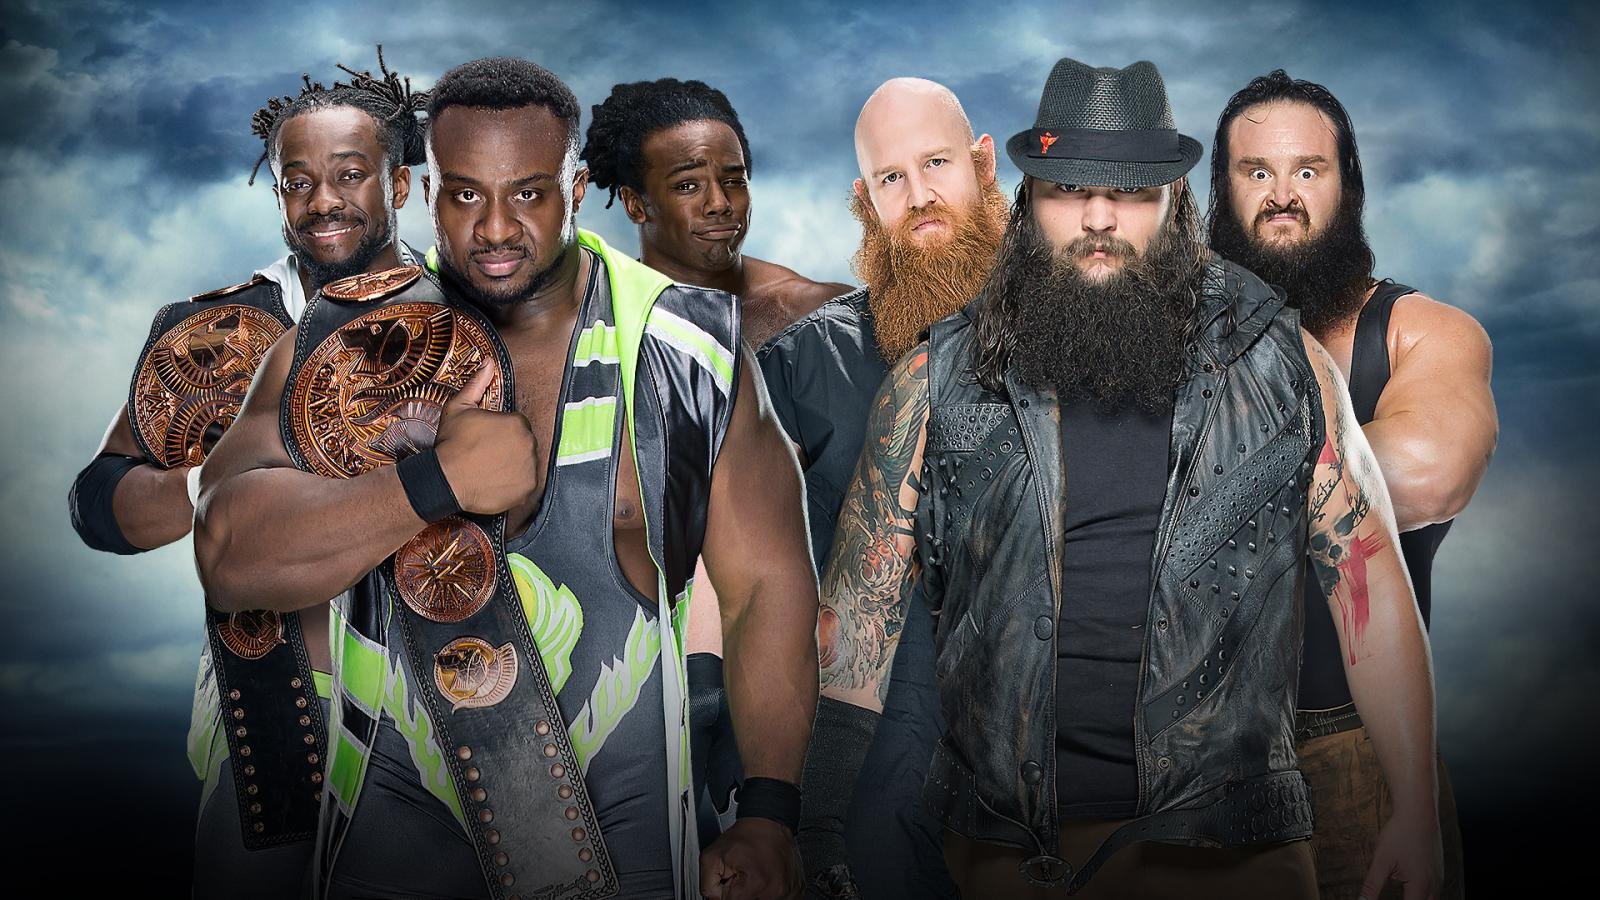 BattleGround - The New Day Vs. The Wyatt Family